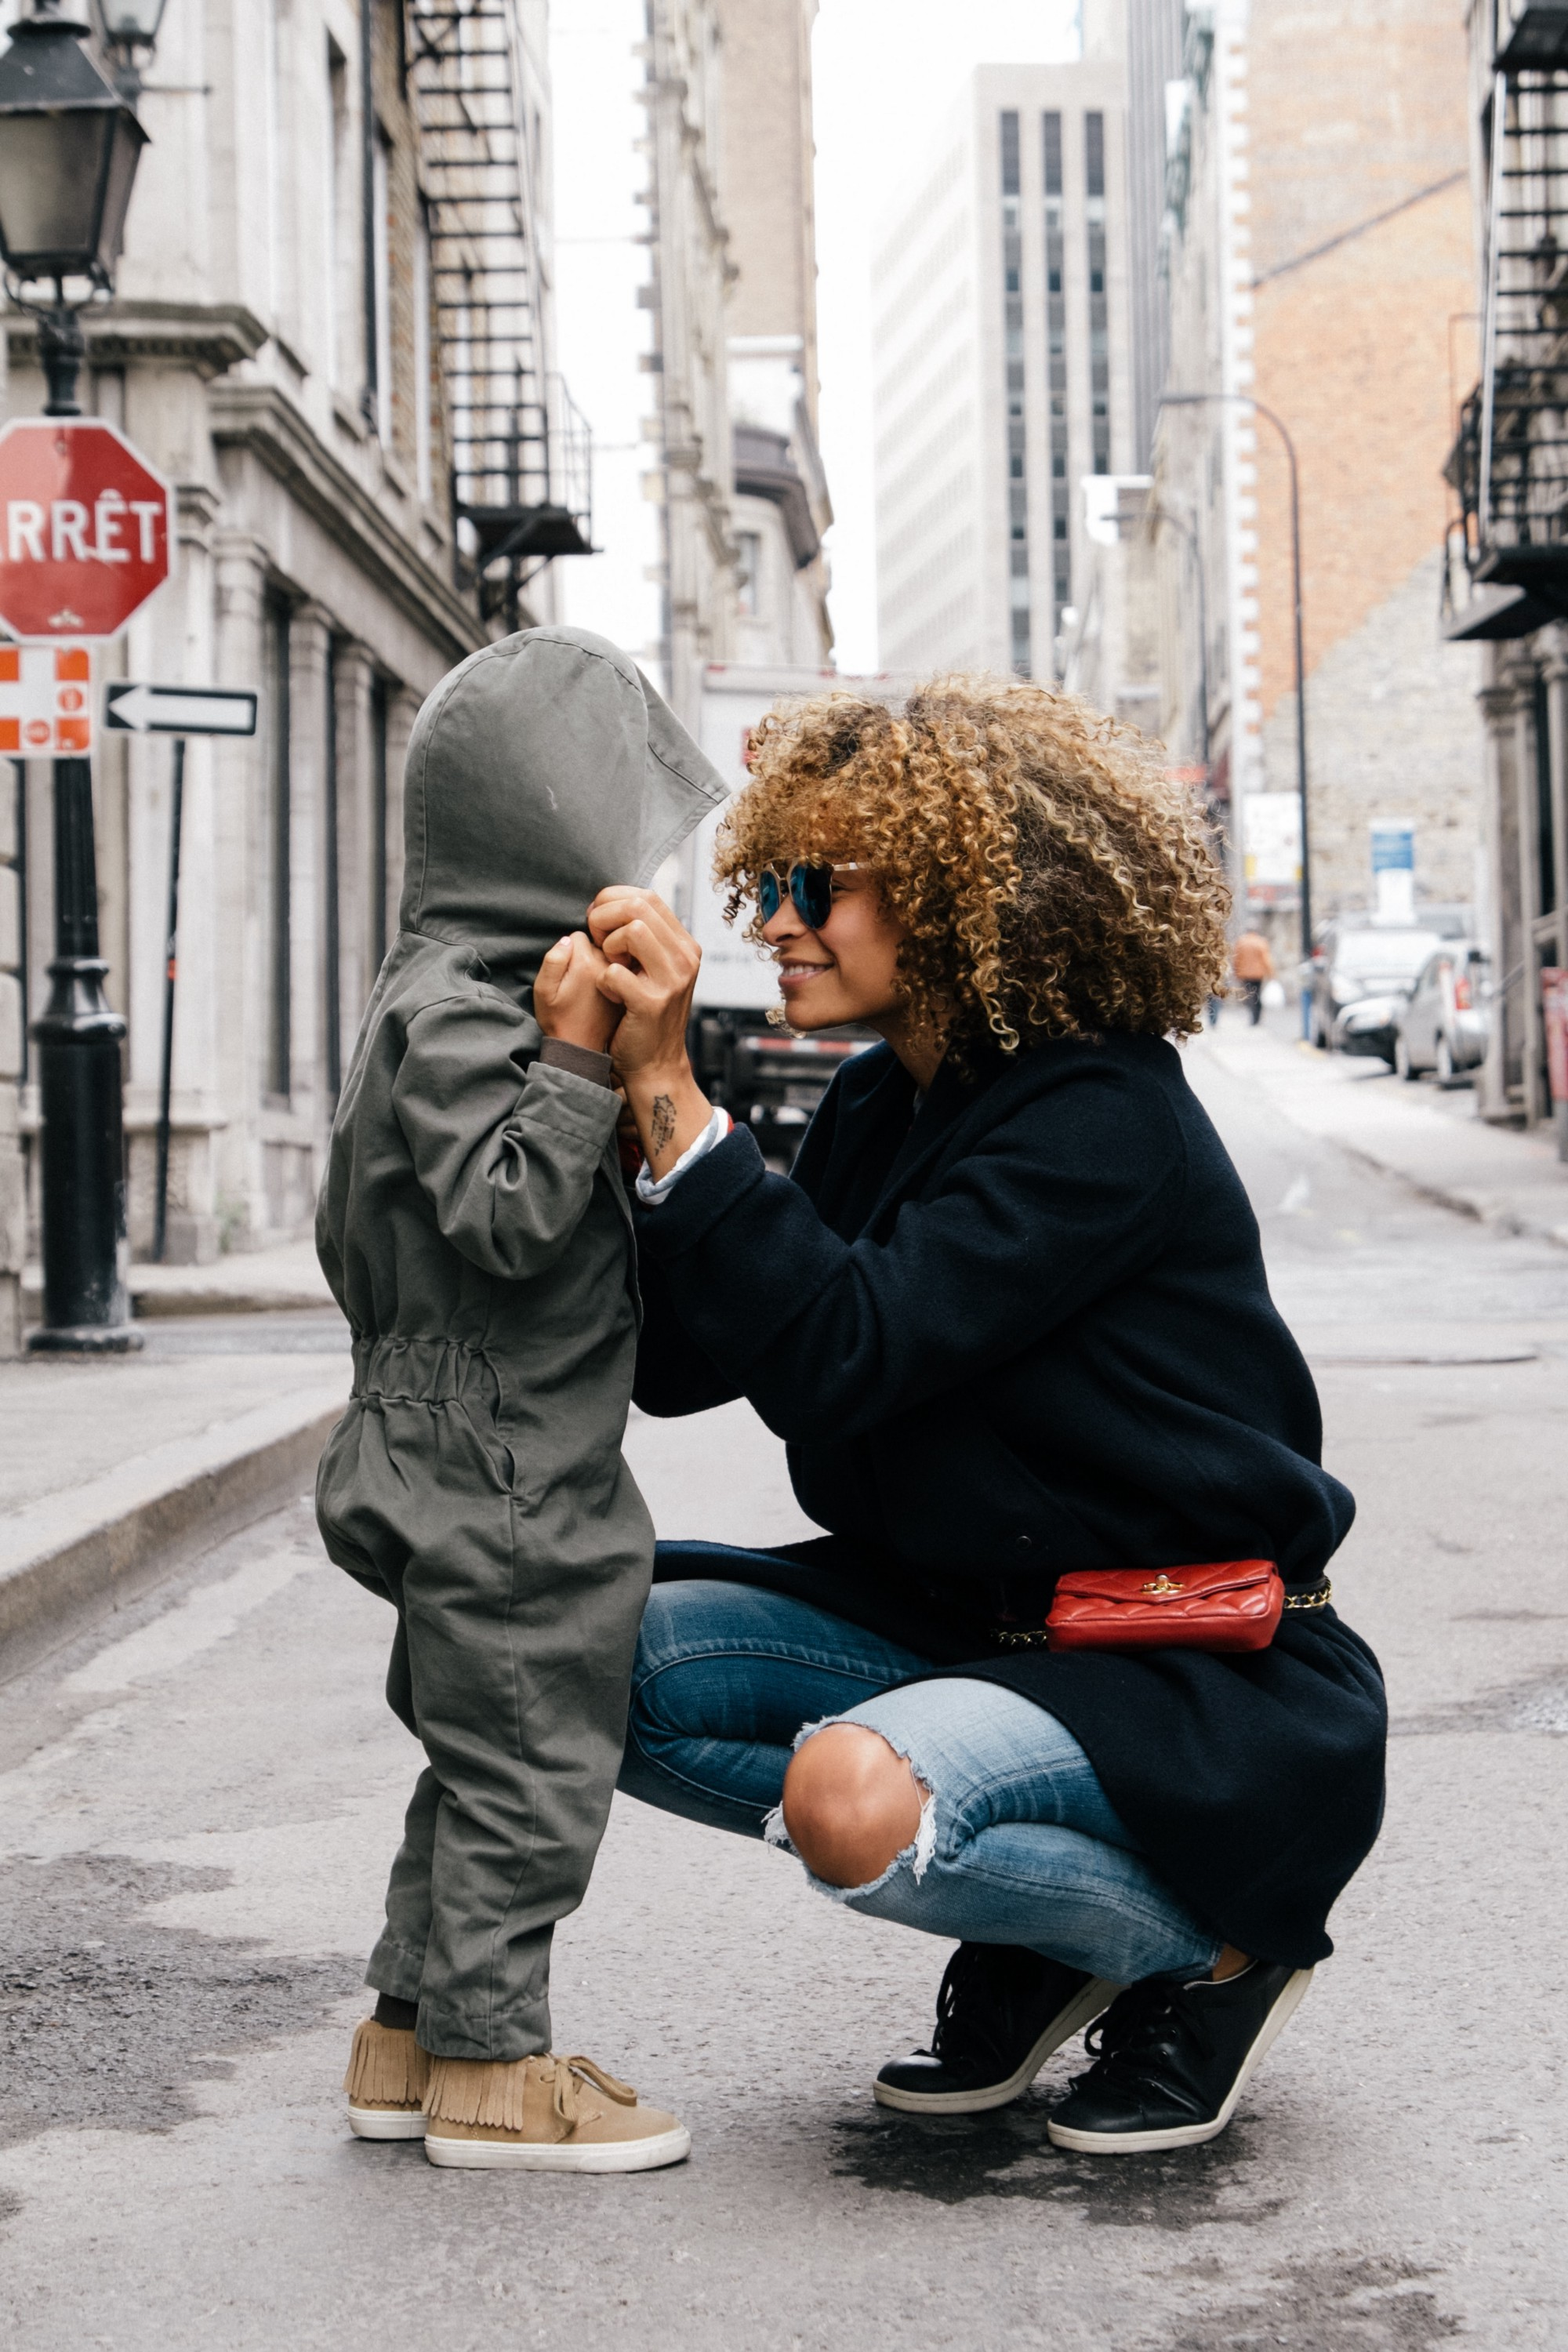 Woman crouching in the street smiling at a child wearing a grey hooded coat. Photo by Sai De Silva on Unsplash